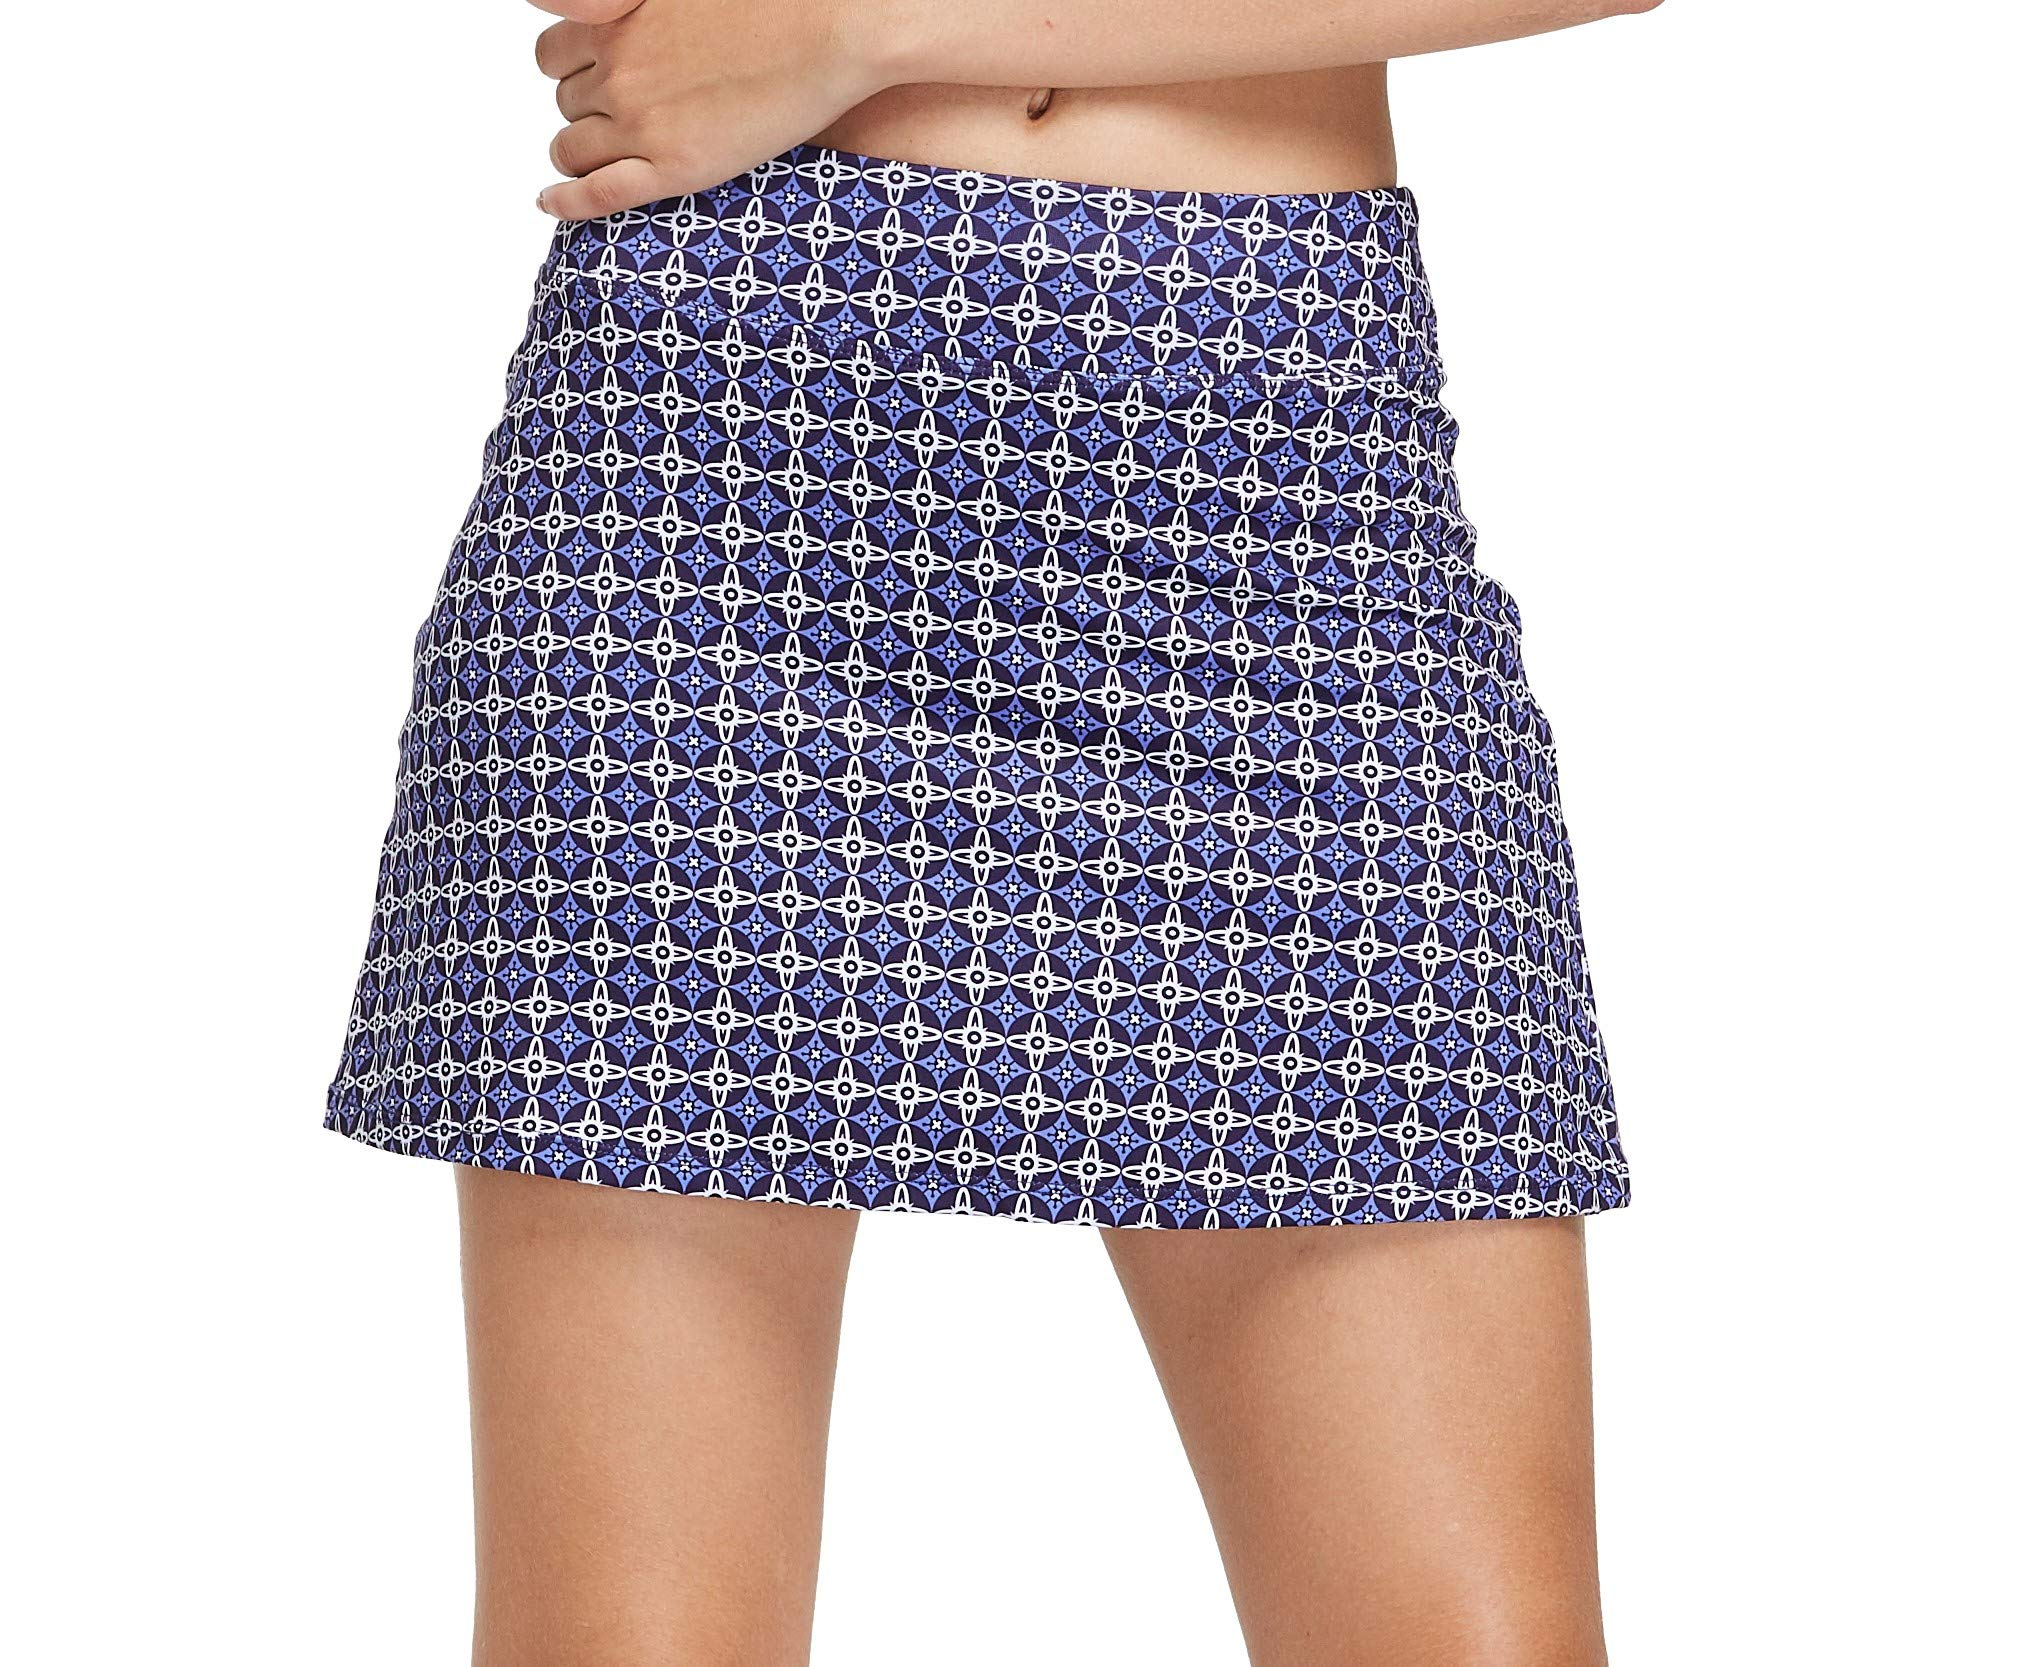 Cityoung Women's Casual Pleated Golf Skirt with Underneath Shorts Running Skorts XL p_xjpl by Cityoung